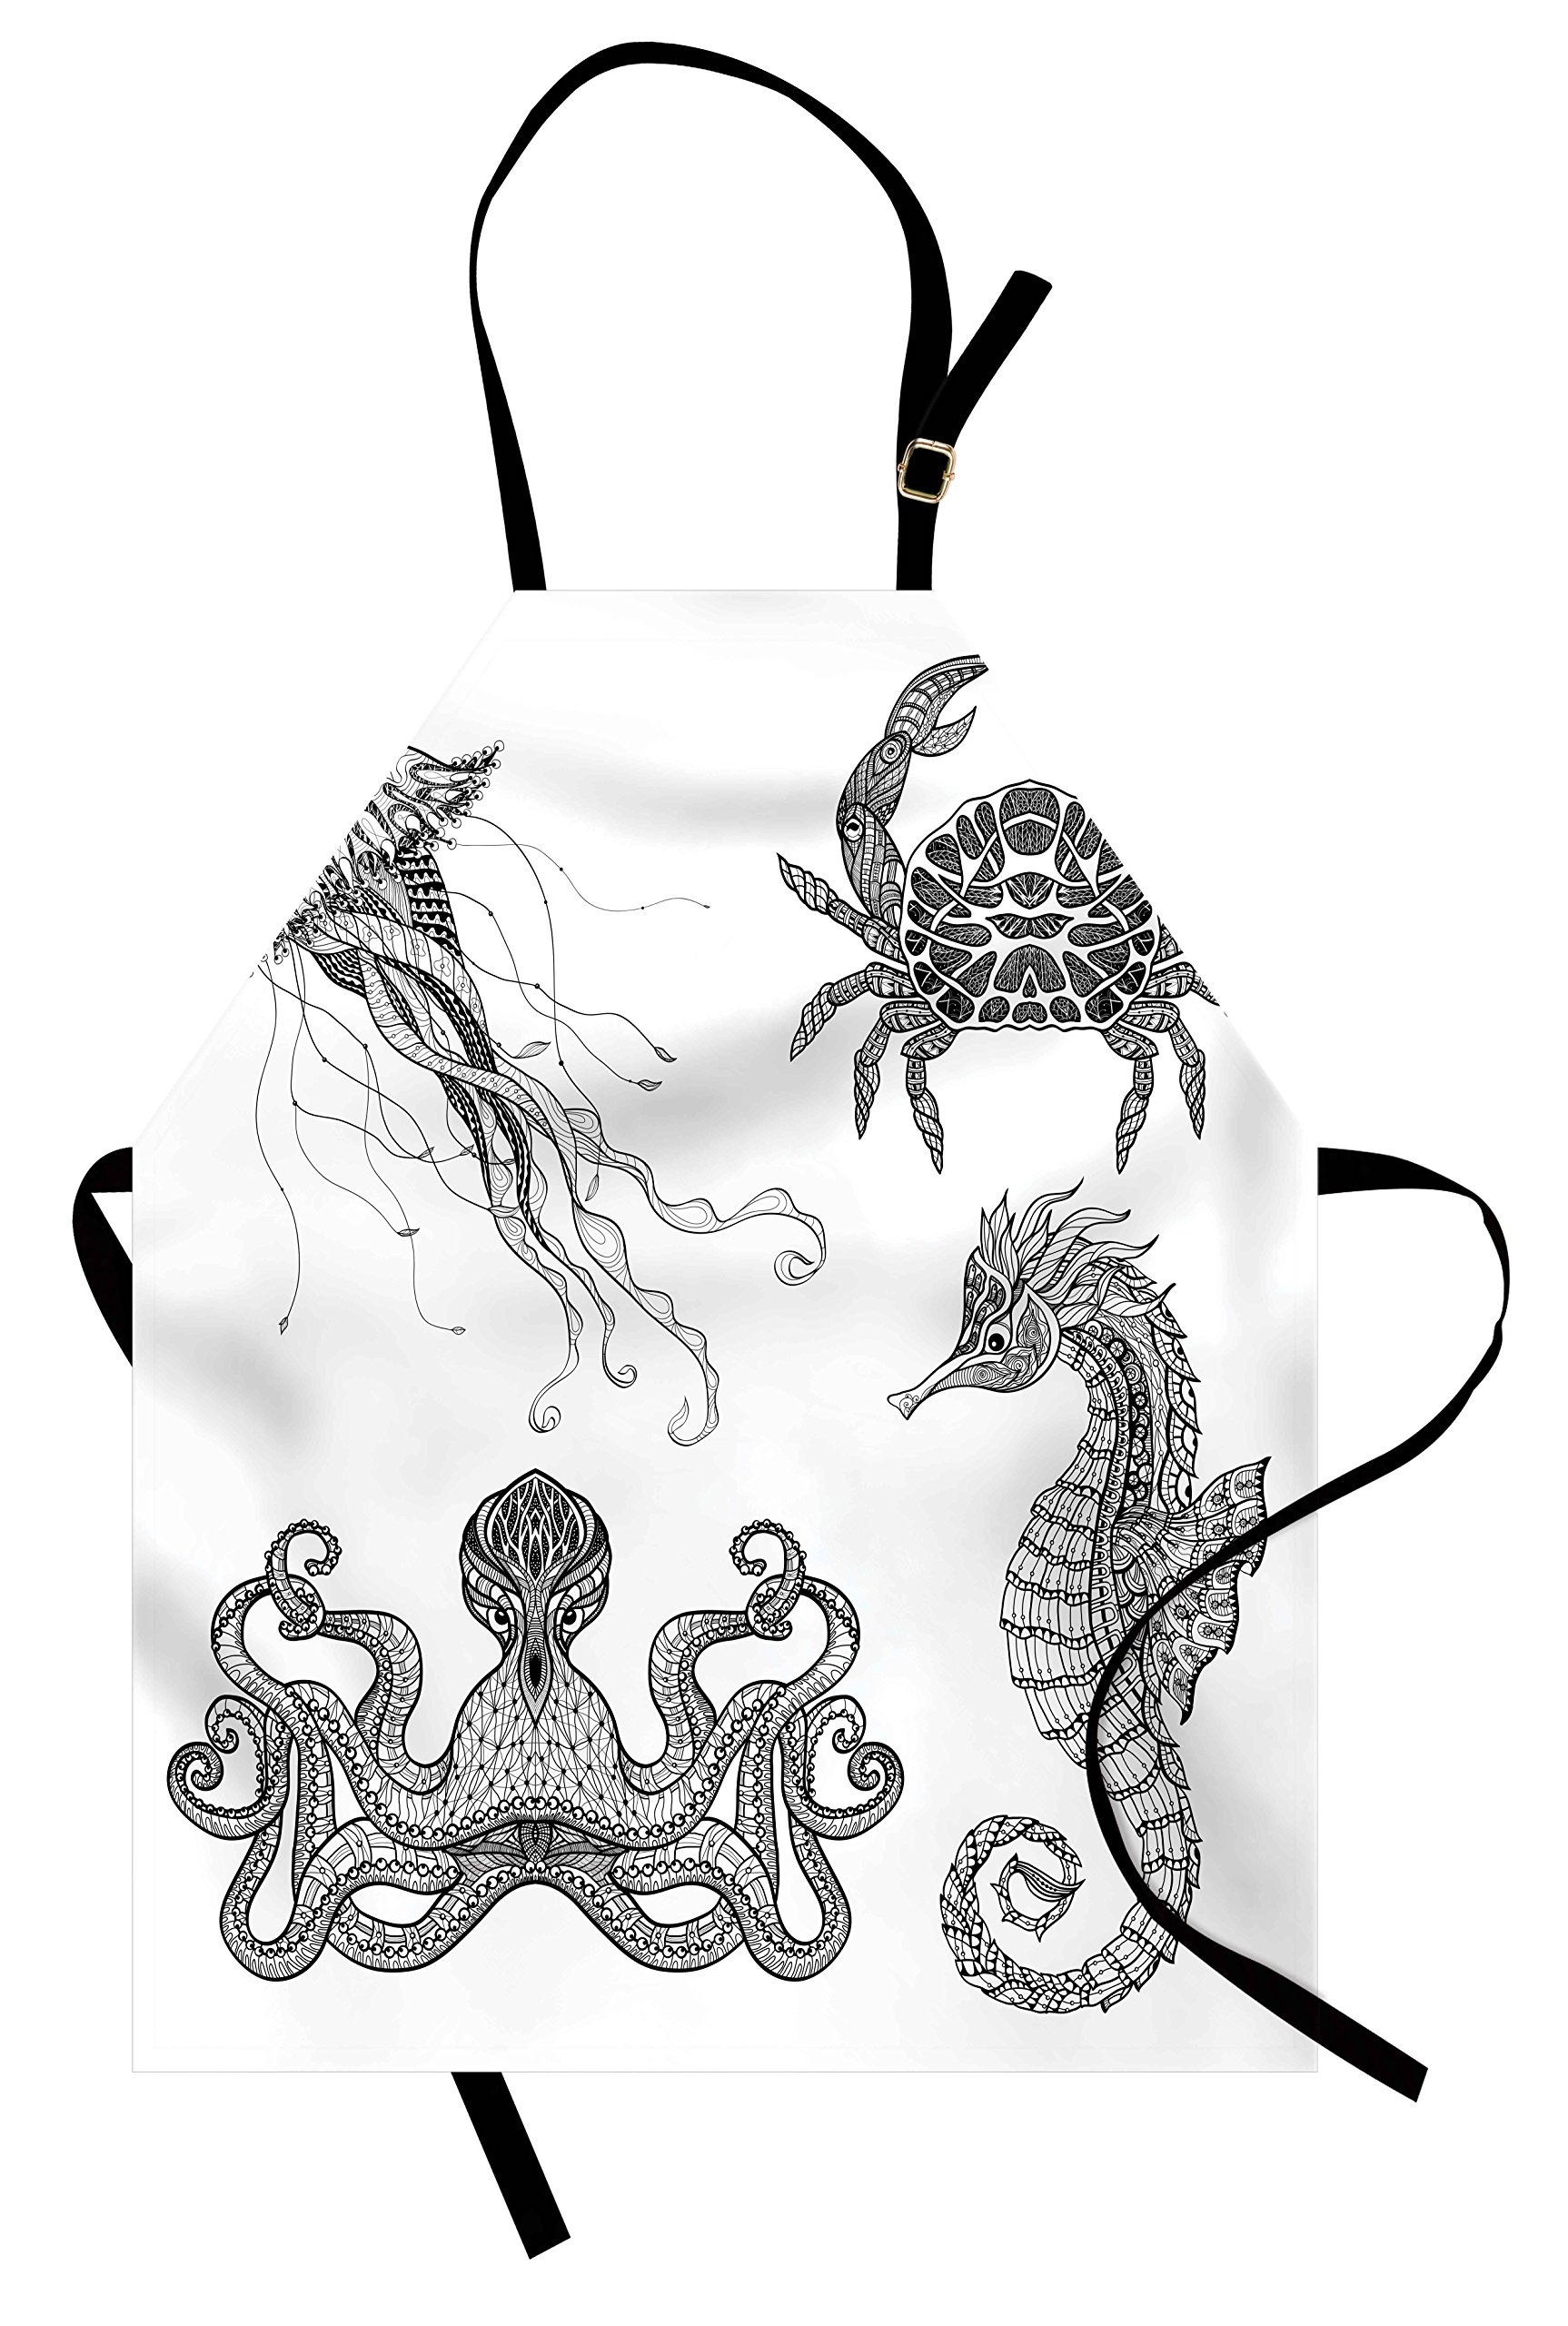 Lunarable Sketchy Apron, Underwater Animals Octopus Crab Seahorse and Jellyfish Artful Sketchy Navy Design, Unisex Kitchen Bib Apron with Adjustable Neck for Cooking Baking Gardening, Black White